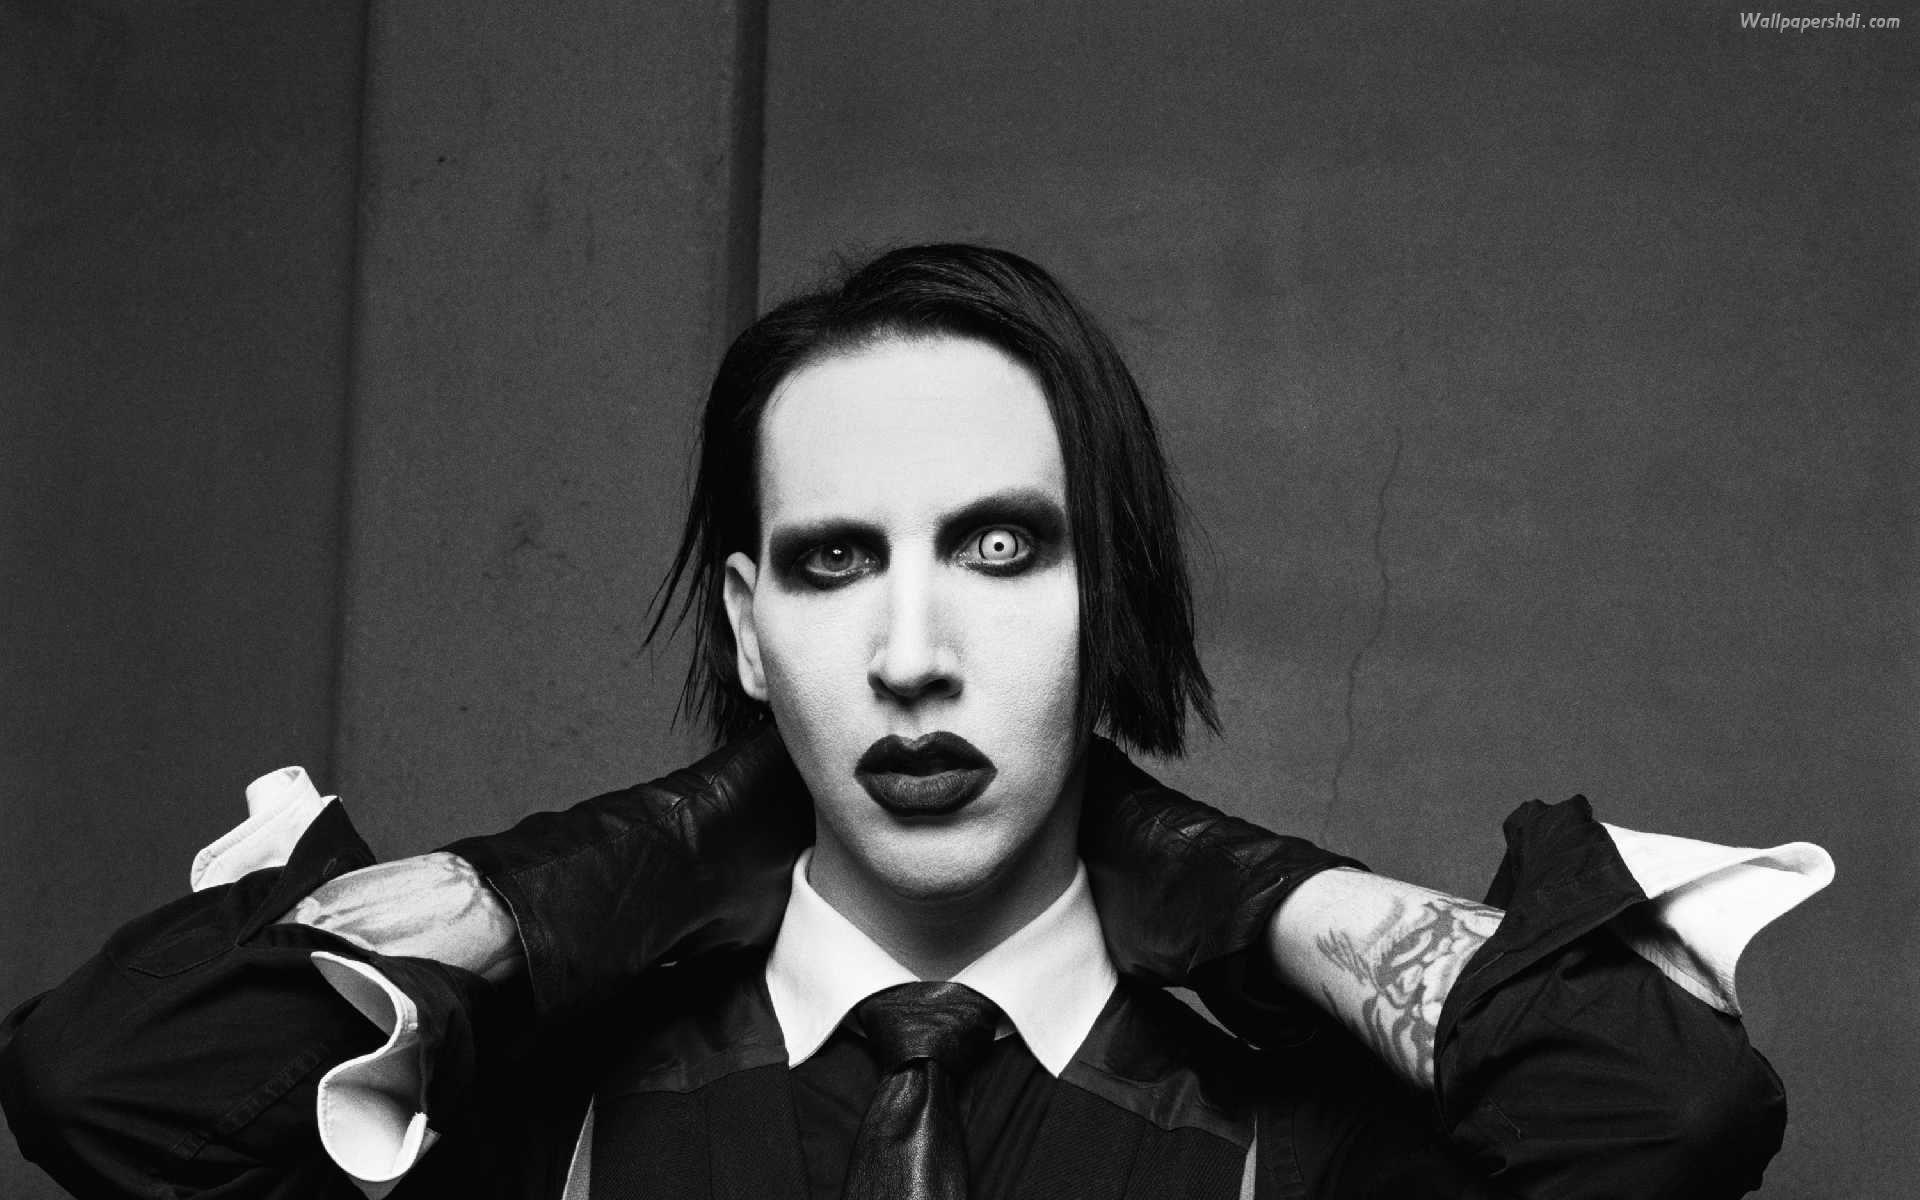 Marilyn Manson Wallpapers Top Free Marilyn Manson